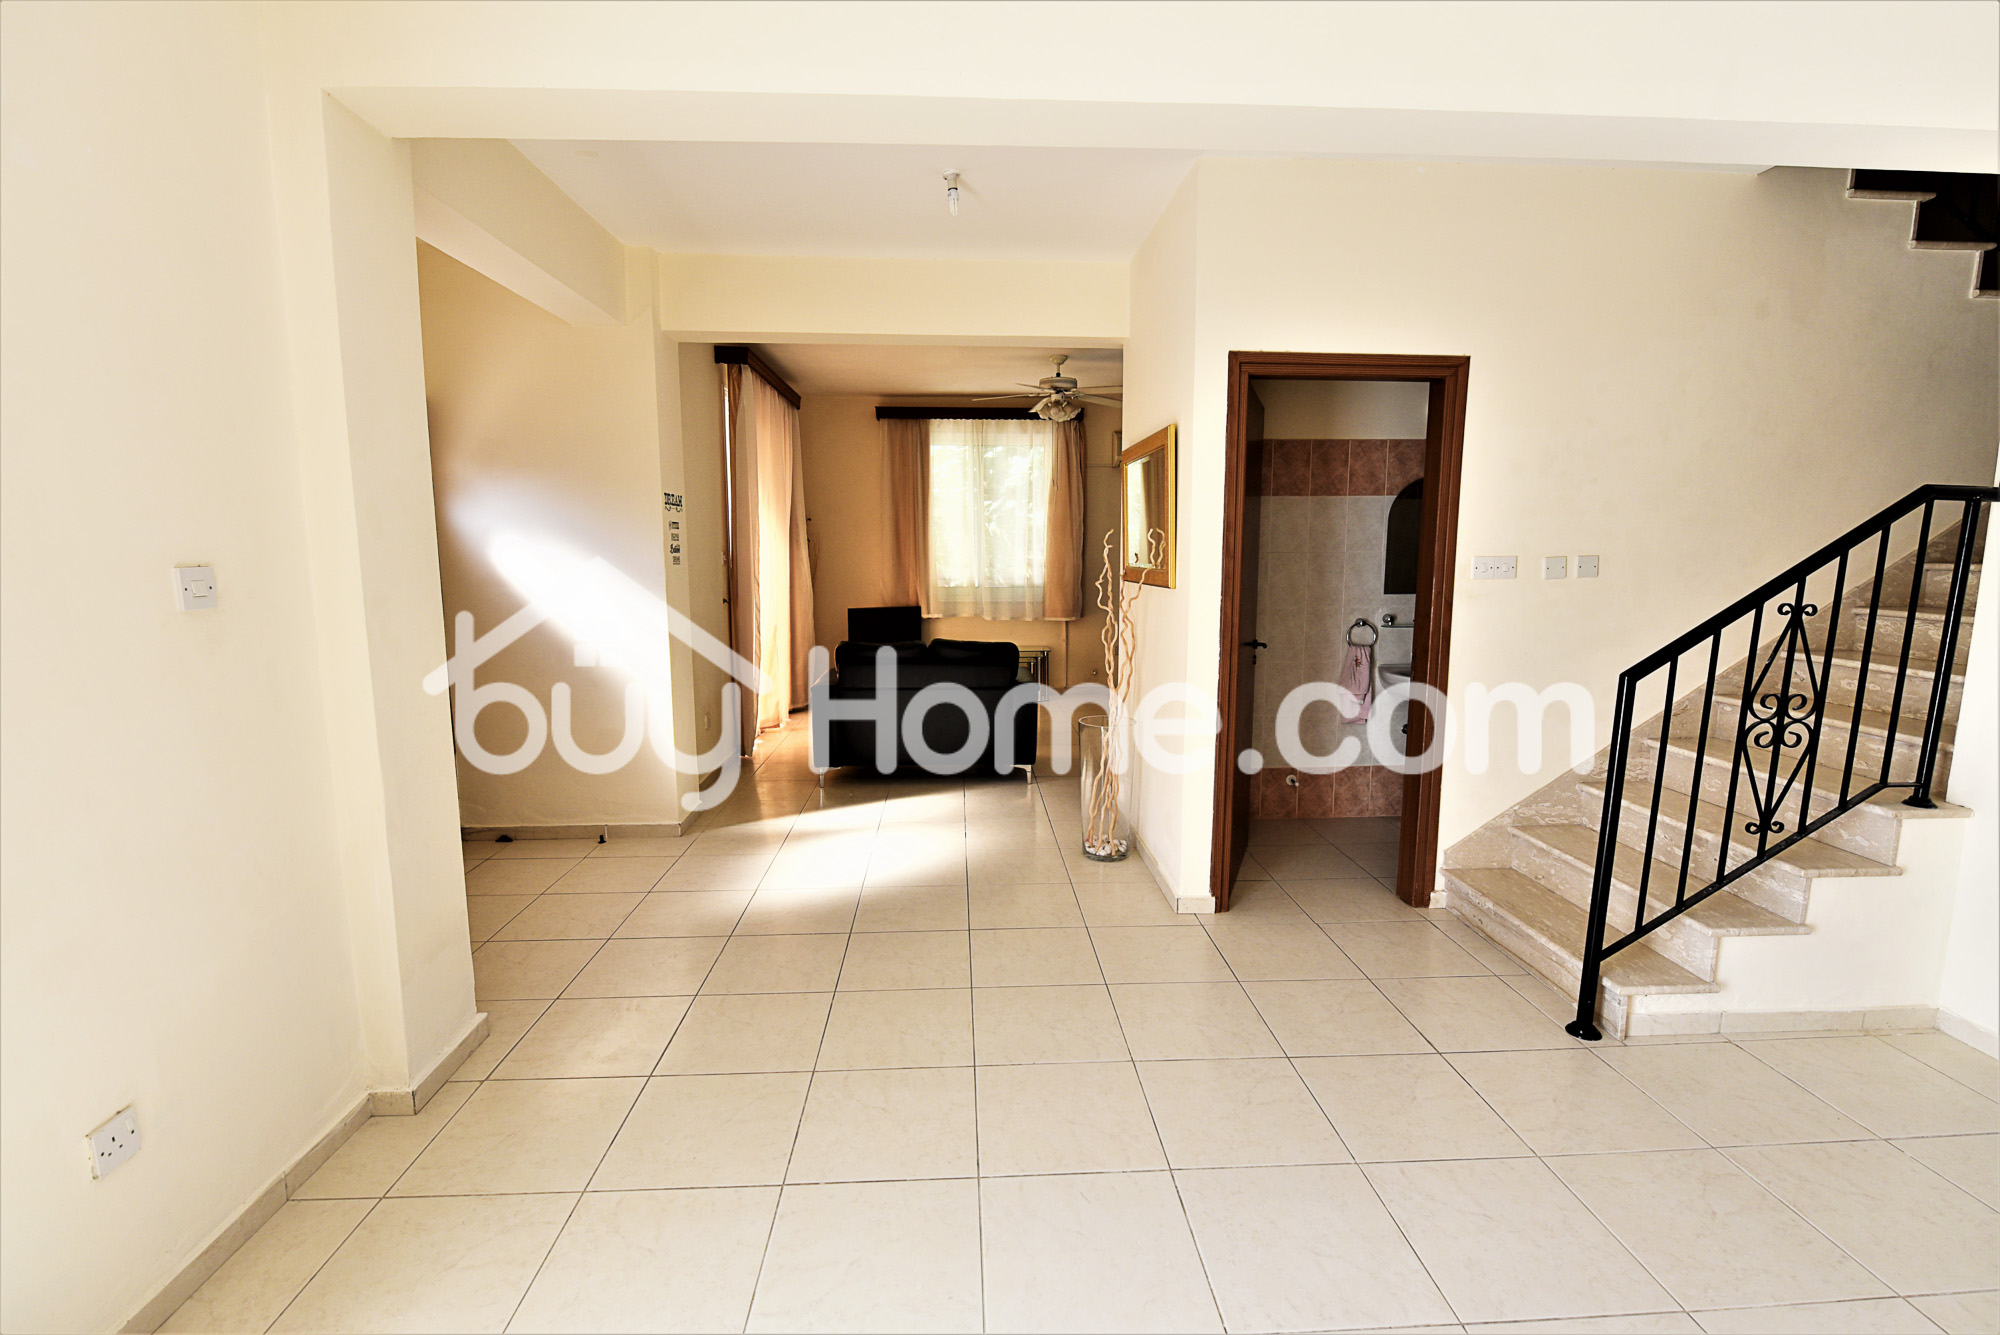 4 Bedroom Detached House | BuyHome